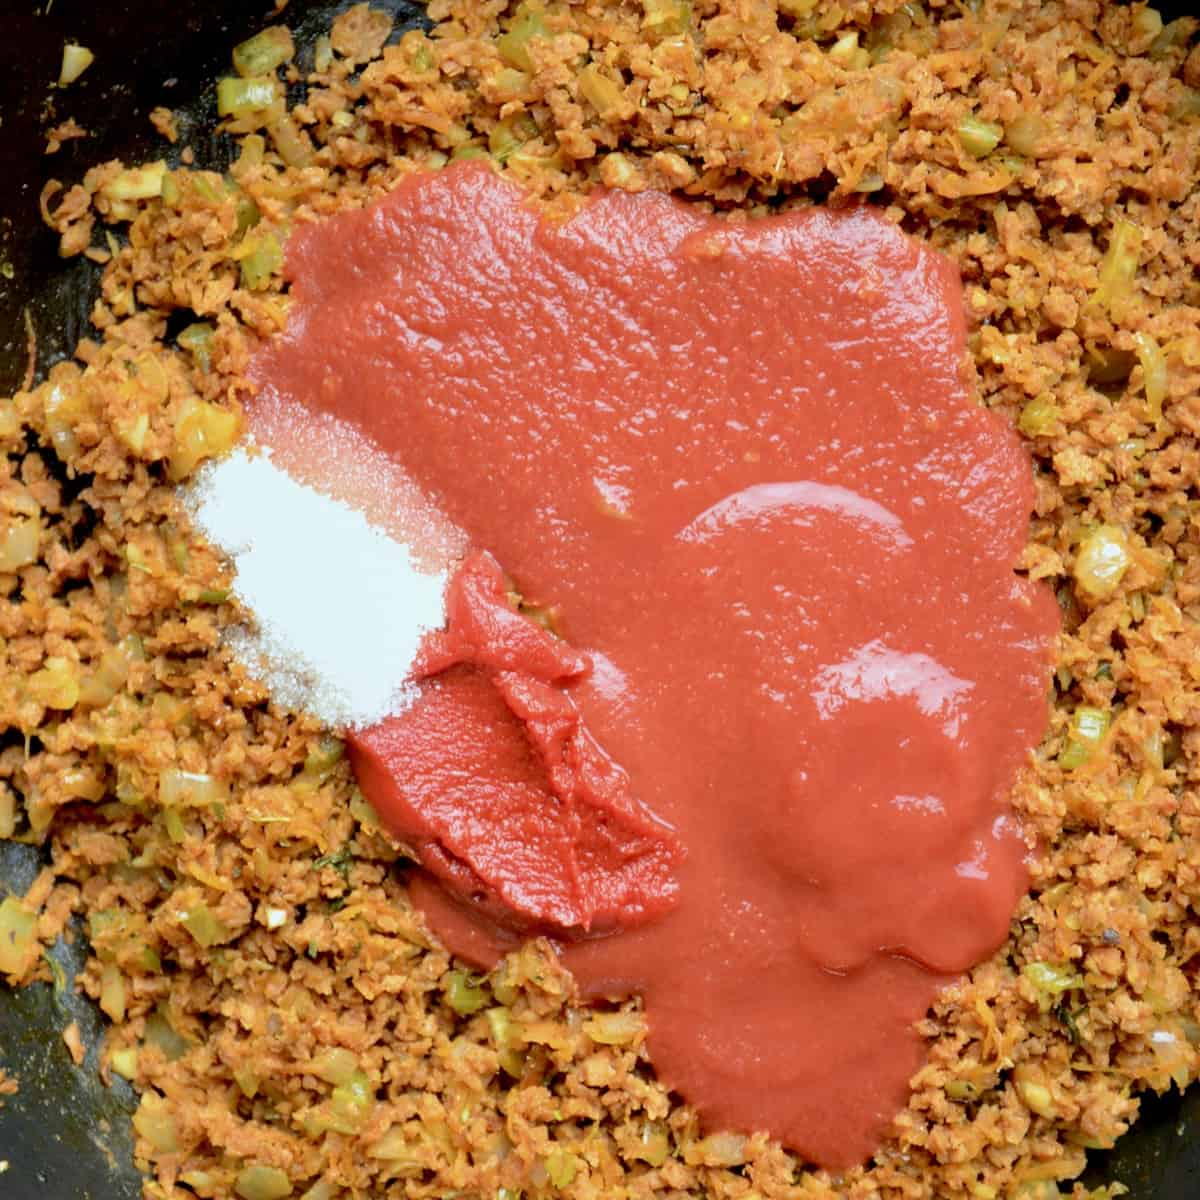 Pureed tomatoes, concentrated tomato paste and some granulated sugar added into the saucepan.